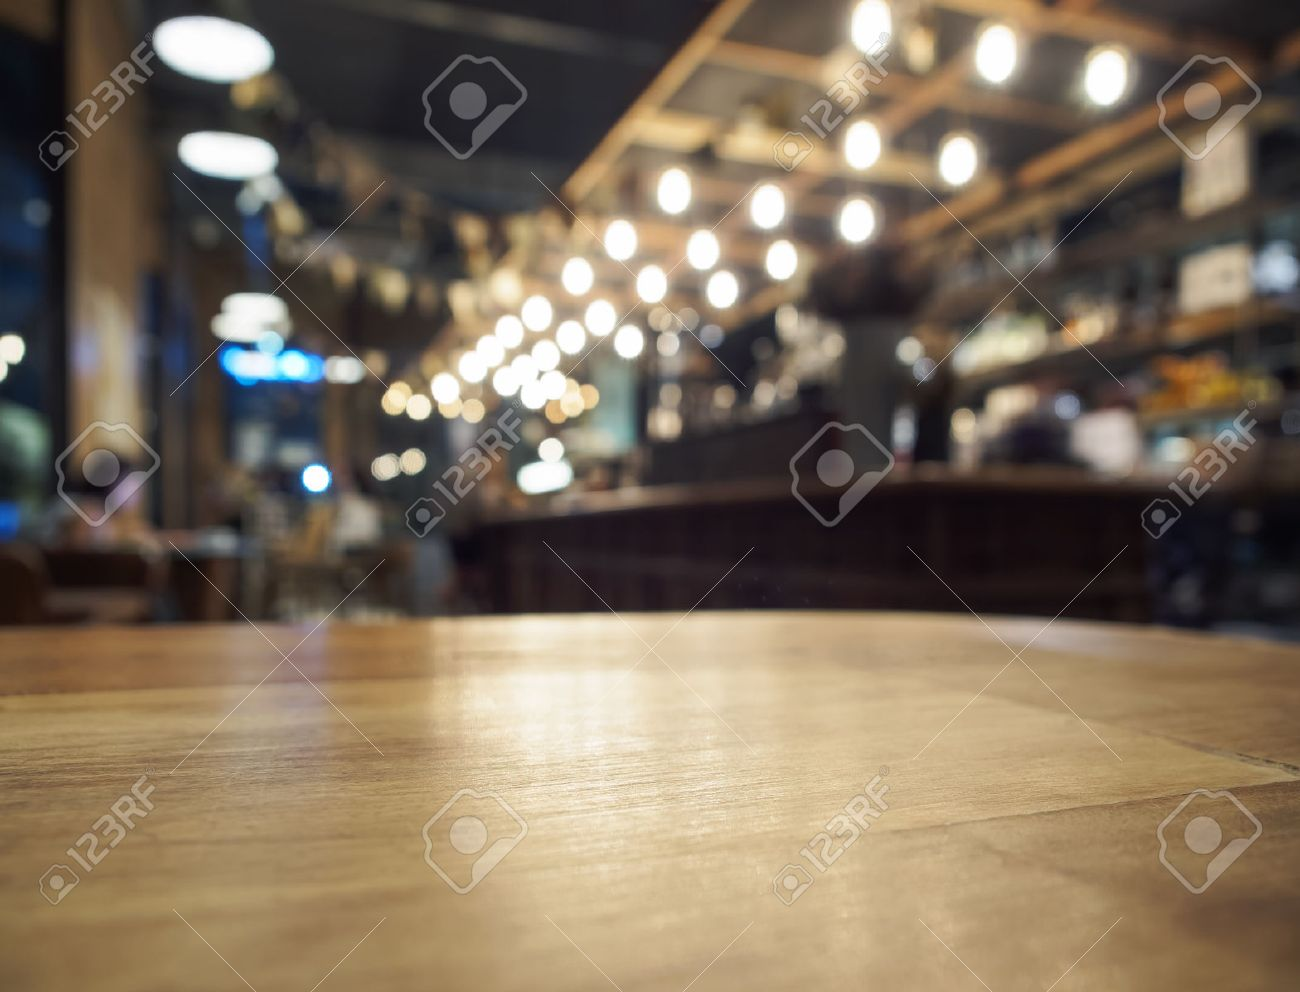 Table Top Counter Bar Restaurant Background Stock Photo Picture And Royalty Free Image Image 37238318